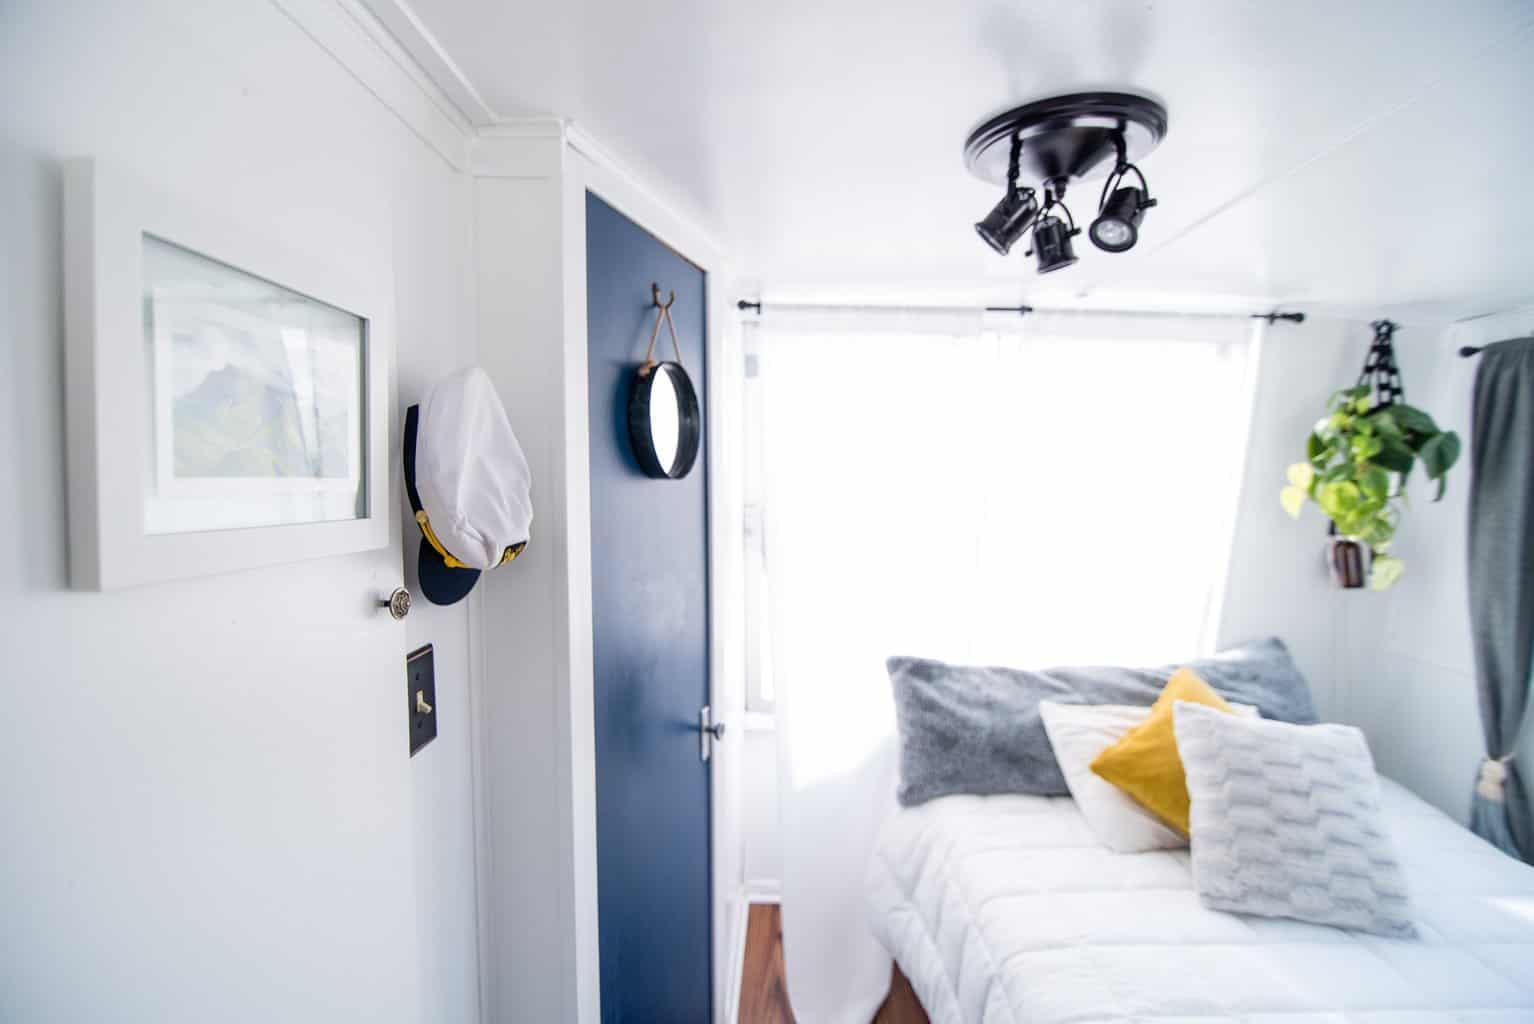 8 Tips for Renting an Airbnb | Boo Roo and Tigger Too